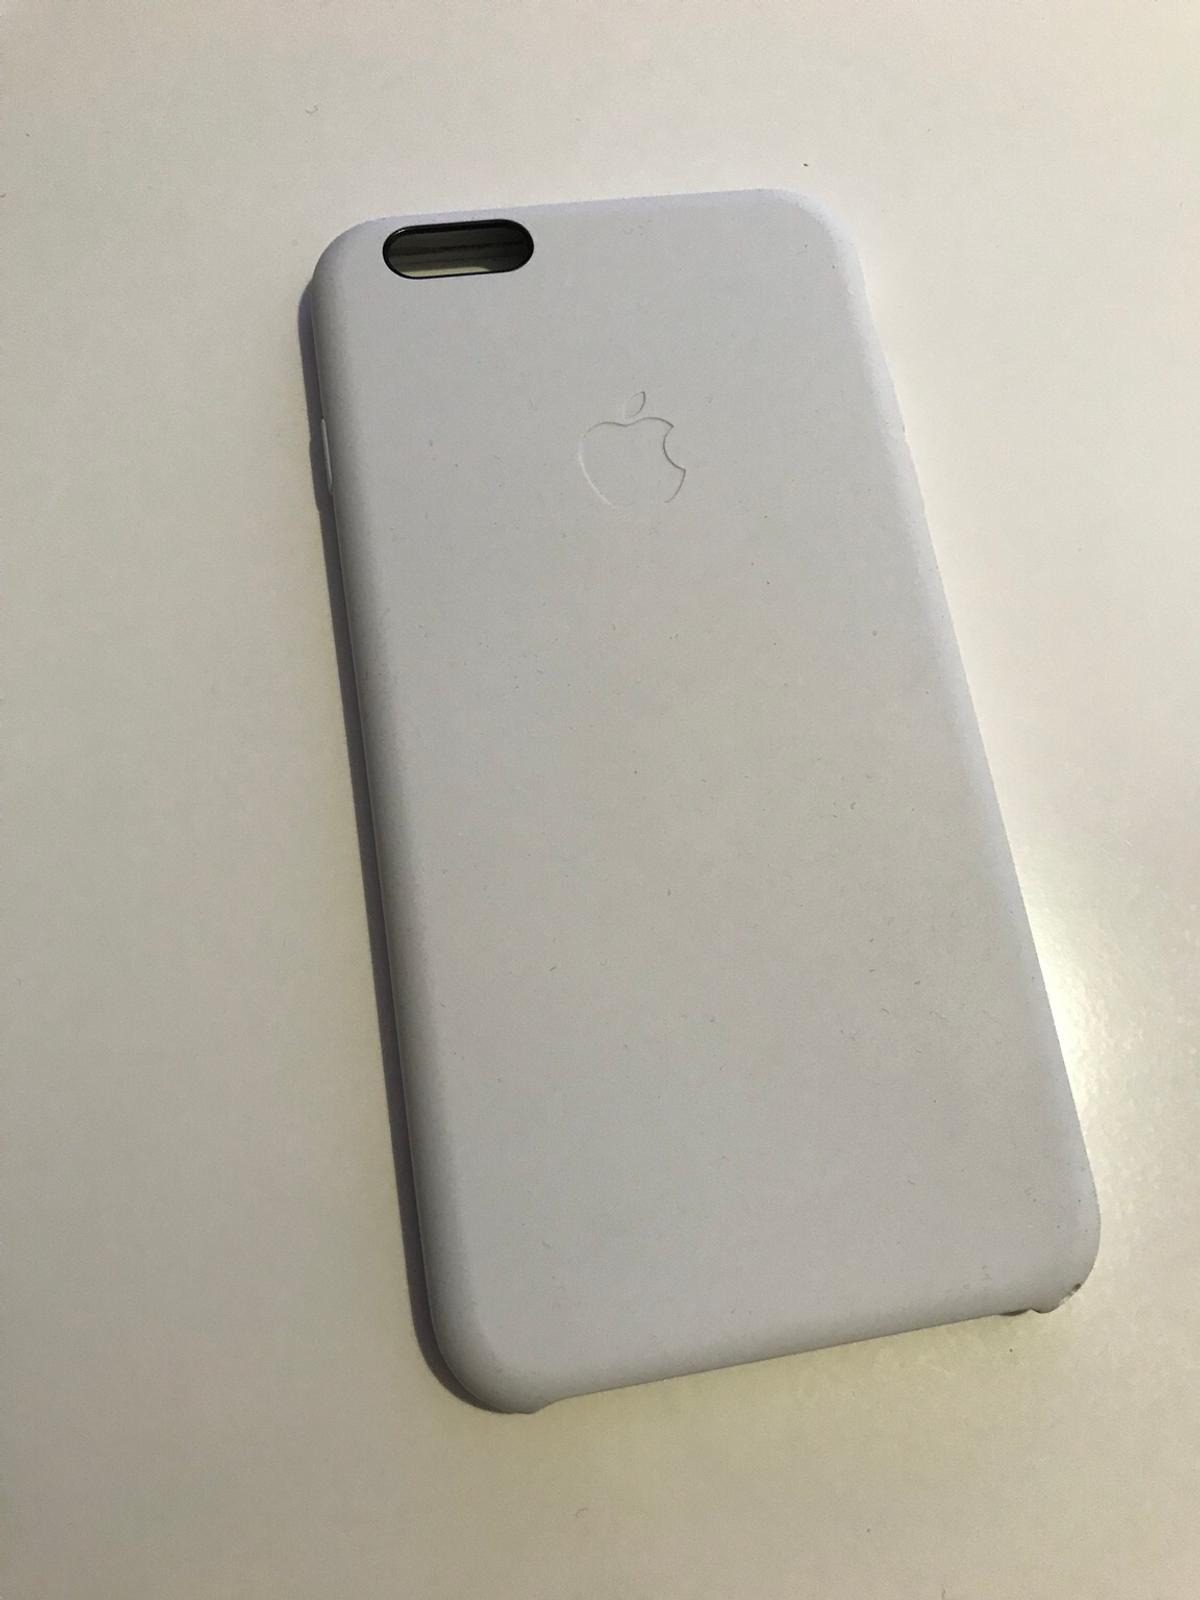 apple mkxk2zm/a iphone 6 plus/6s plus silikon hülle weiß/schwarz